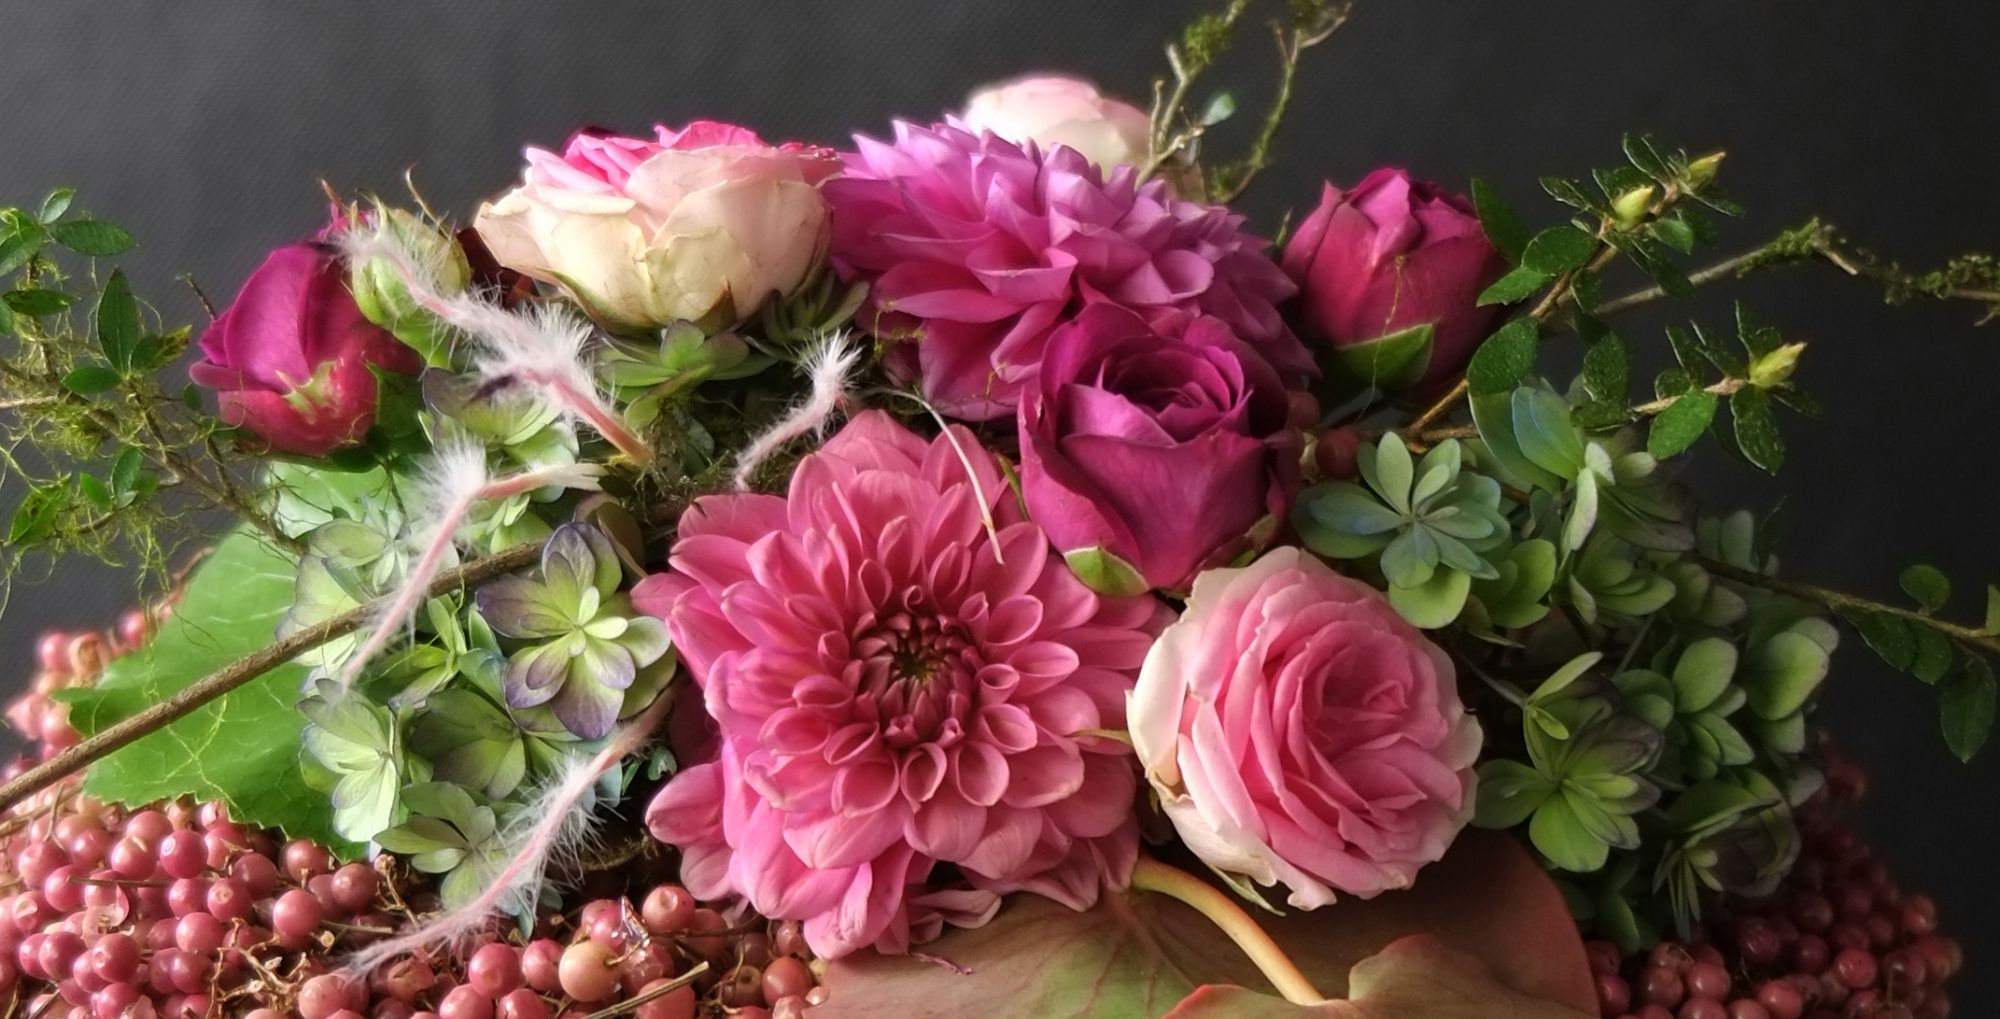 10 Hong Kong Florists You Should Have On Speed Dial